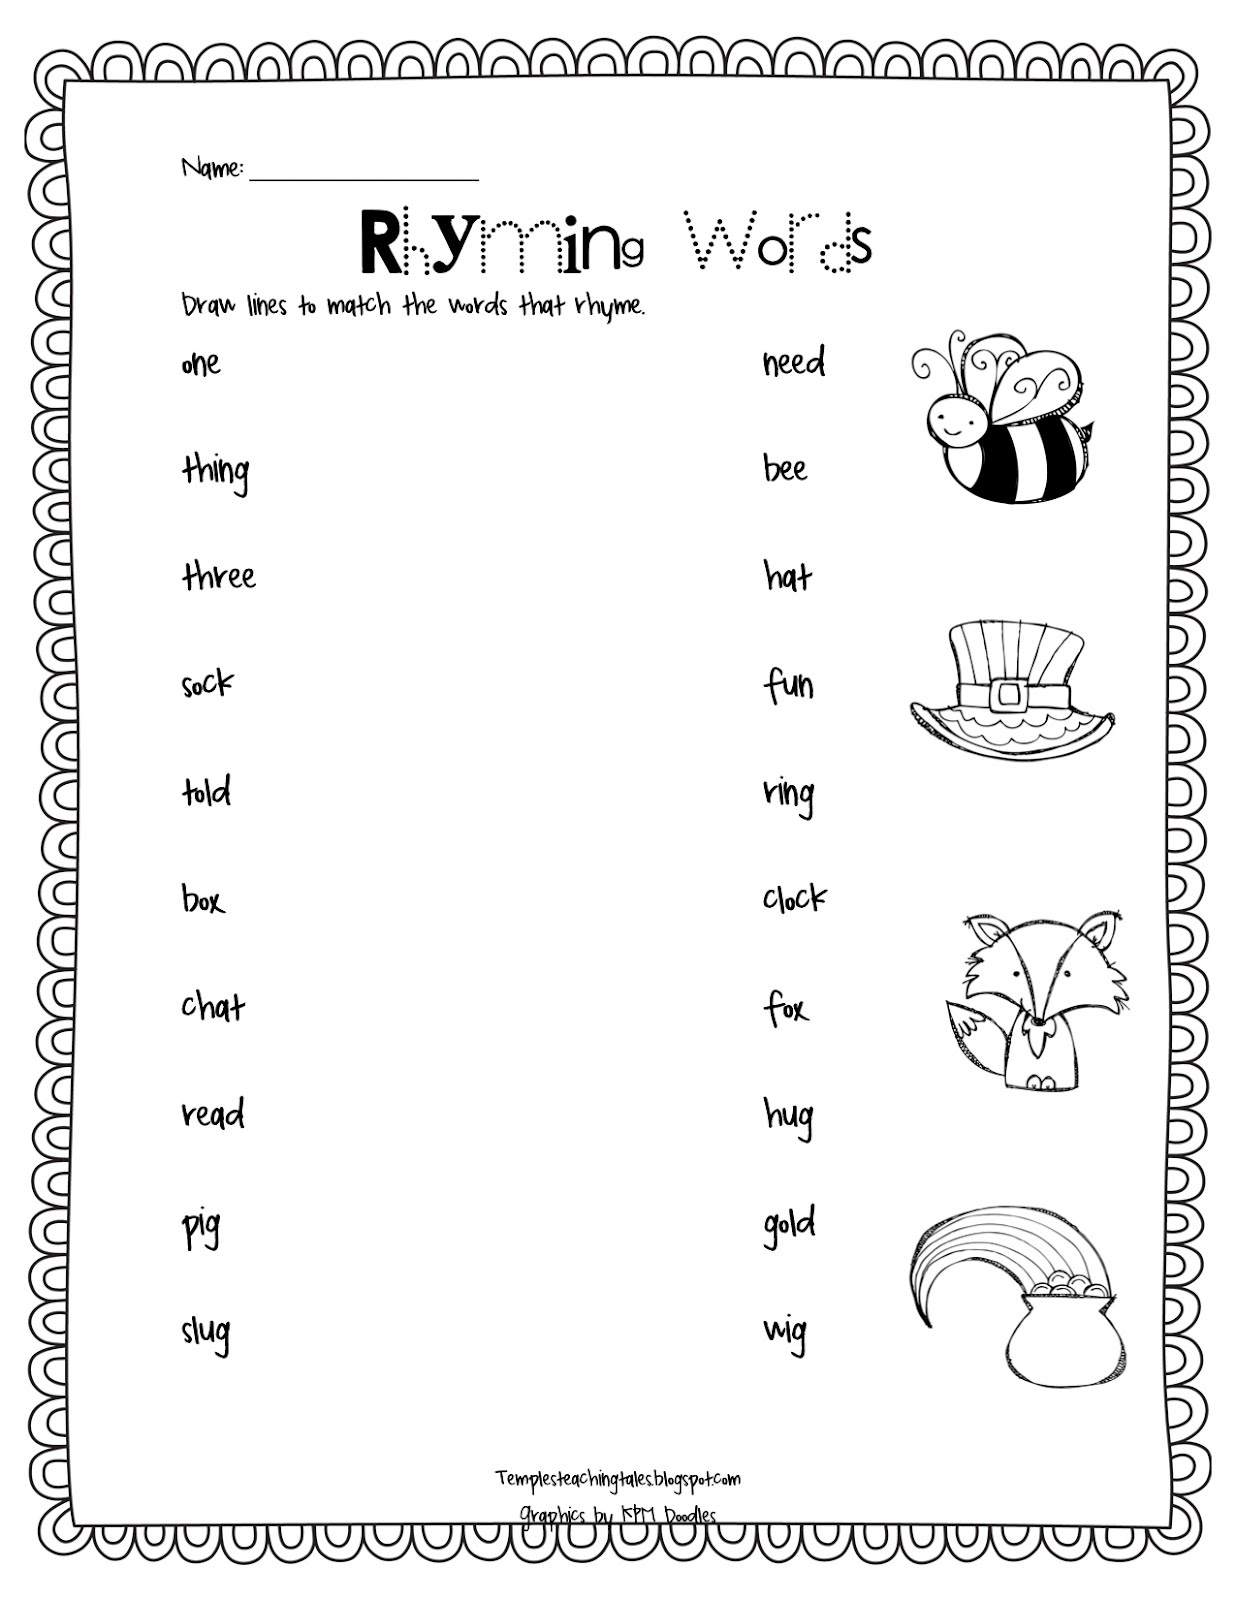 Rhyming Words Worksheet Grade 1 - Reocurent